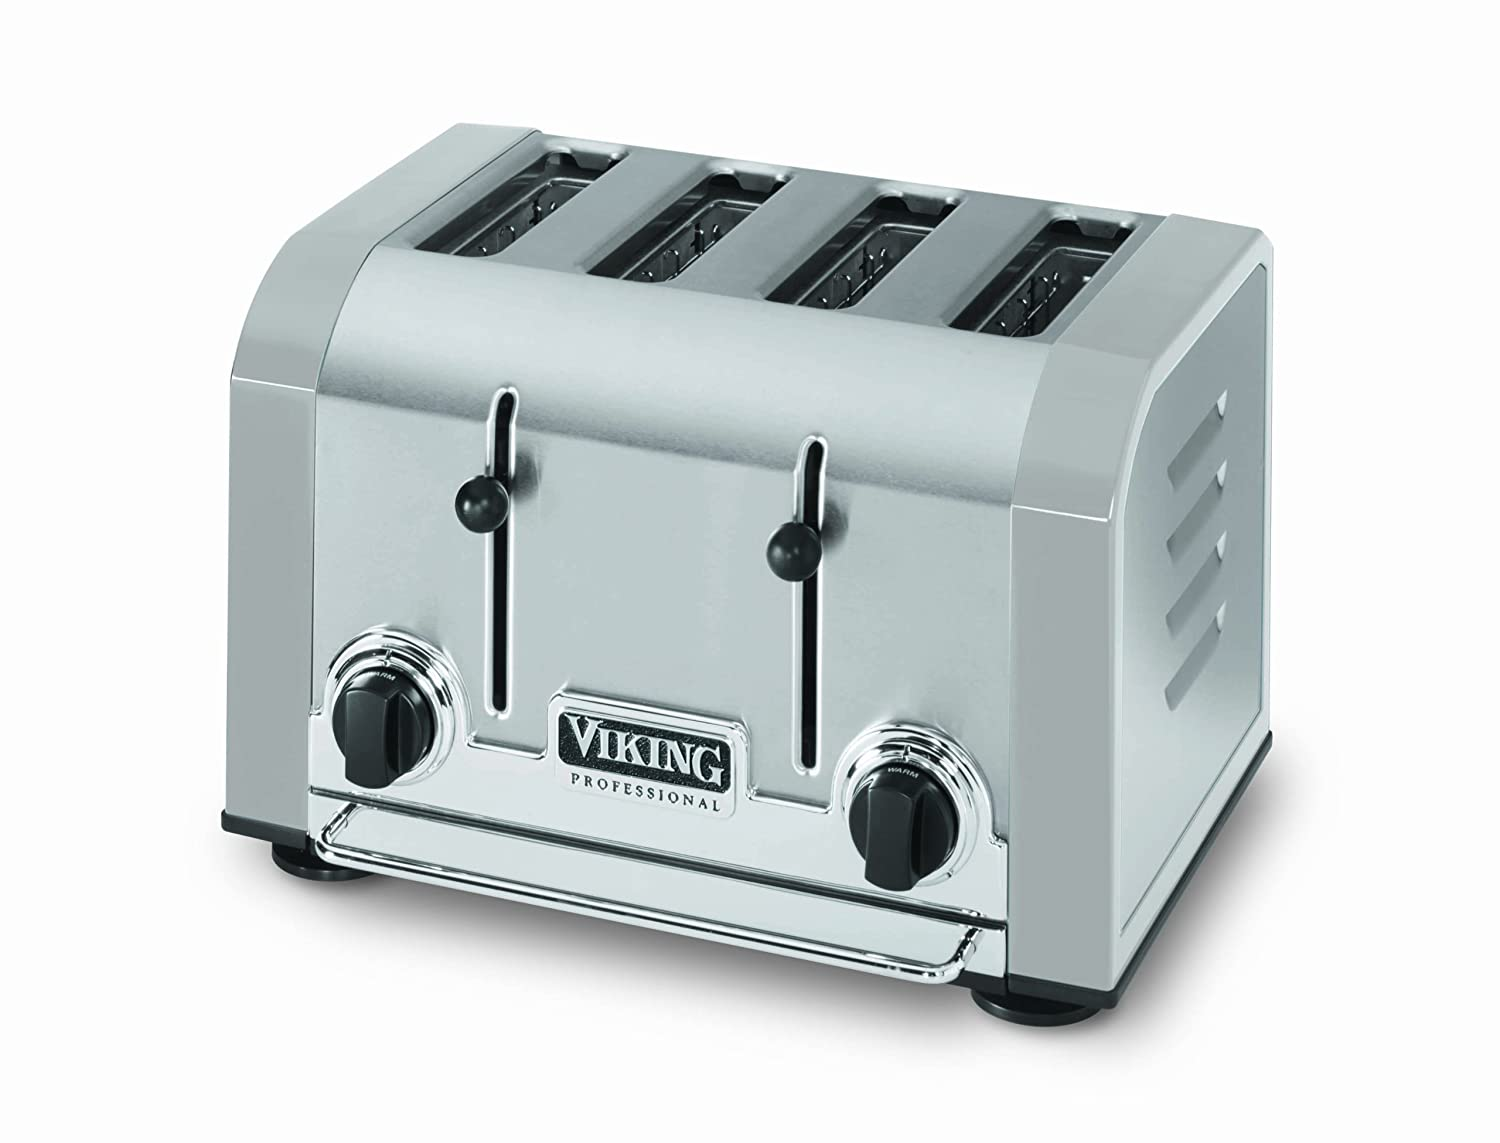 Amazon.com: Viking Professional 4 Slot Toaster, Stainless Gray ...